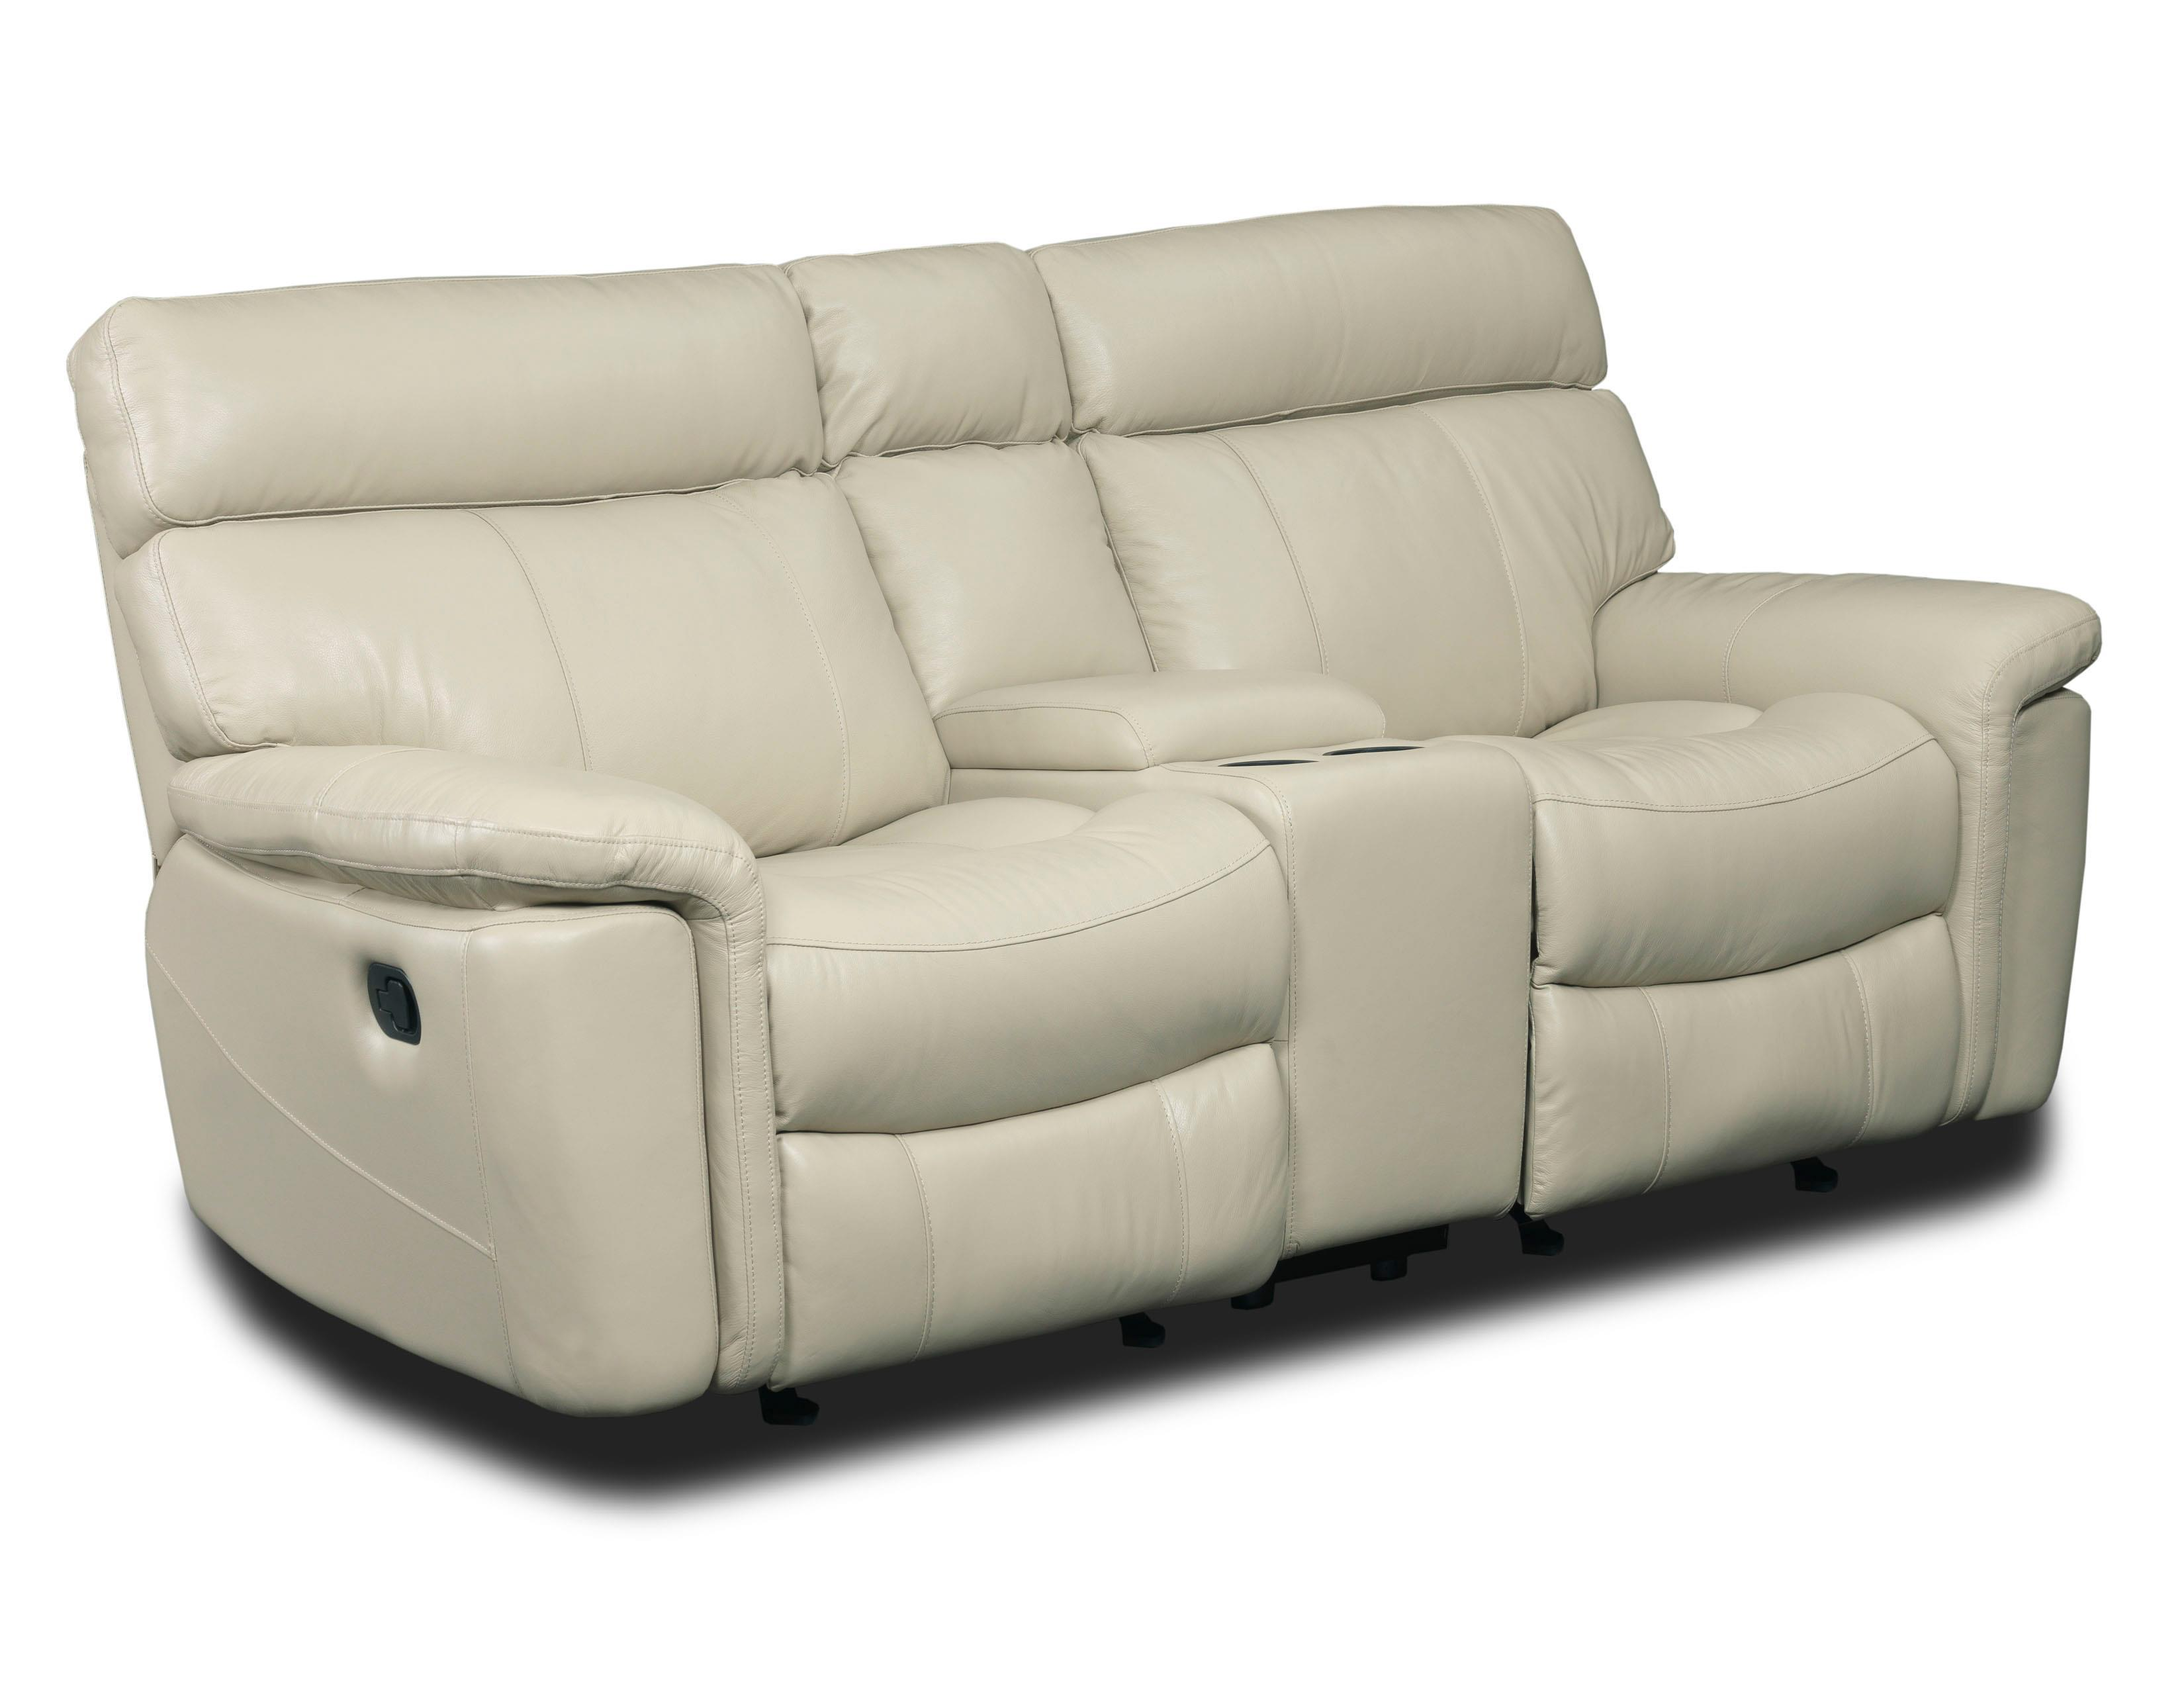 Hooker Furniture SS620 Three Piece Motion Sofa - Item Number: SS620-E3-082